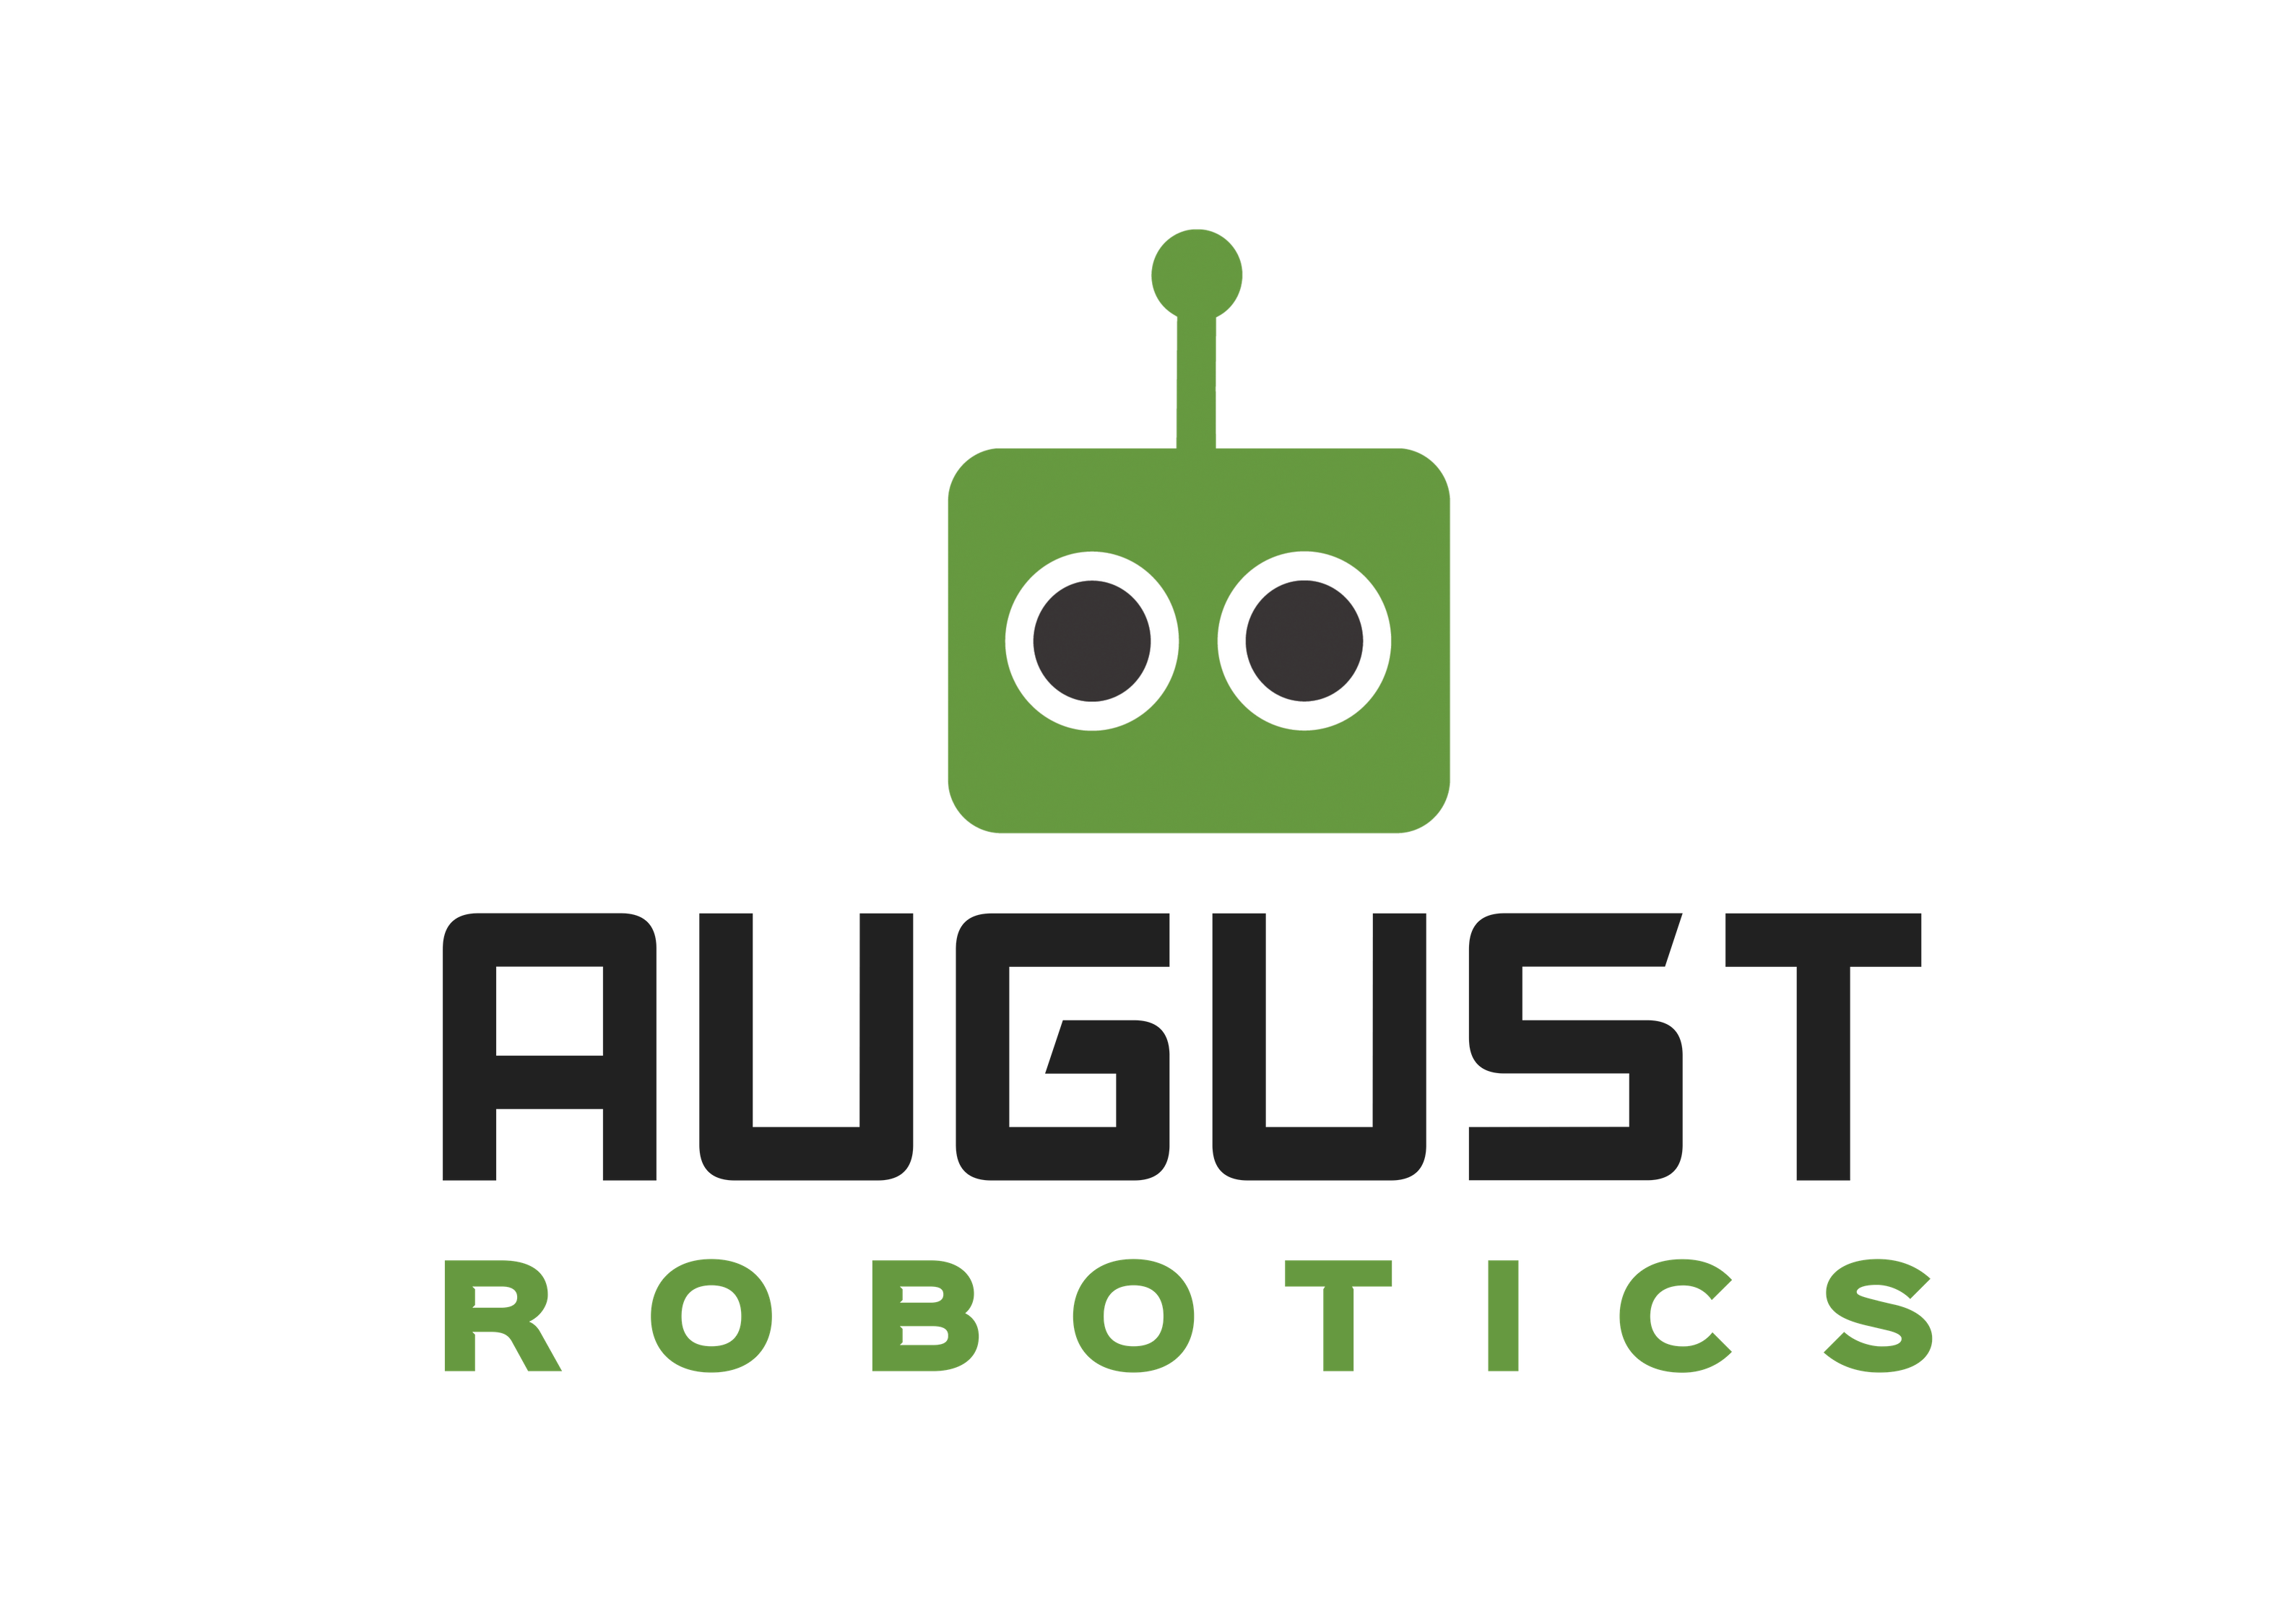 August Robotics Limited